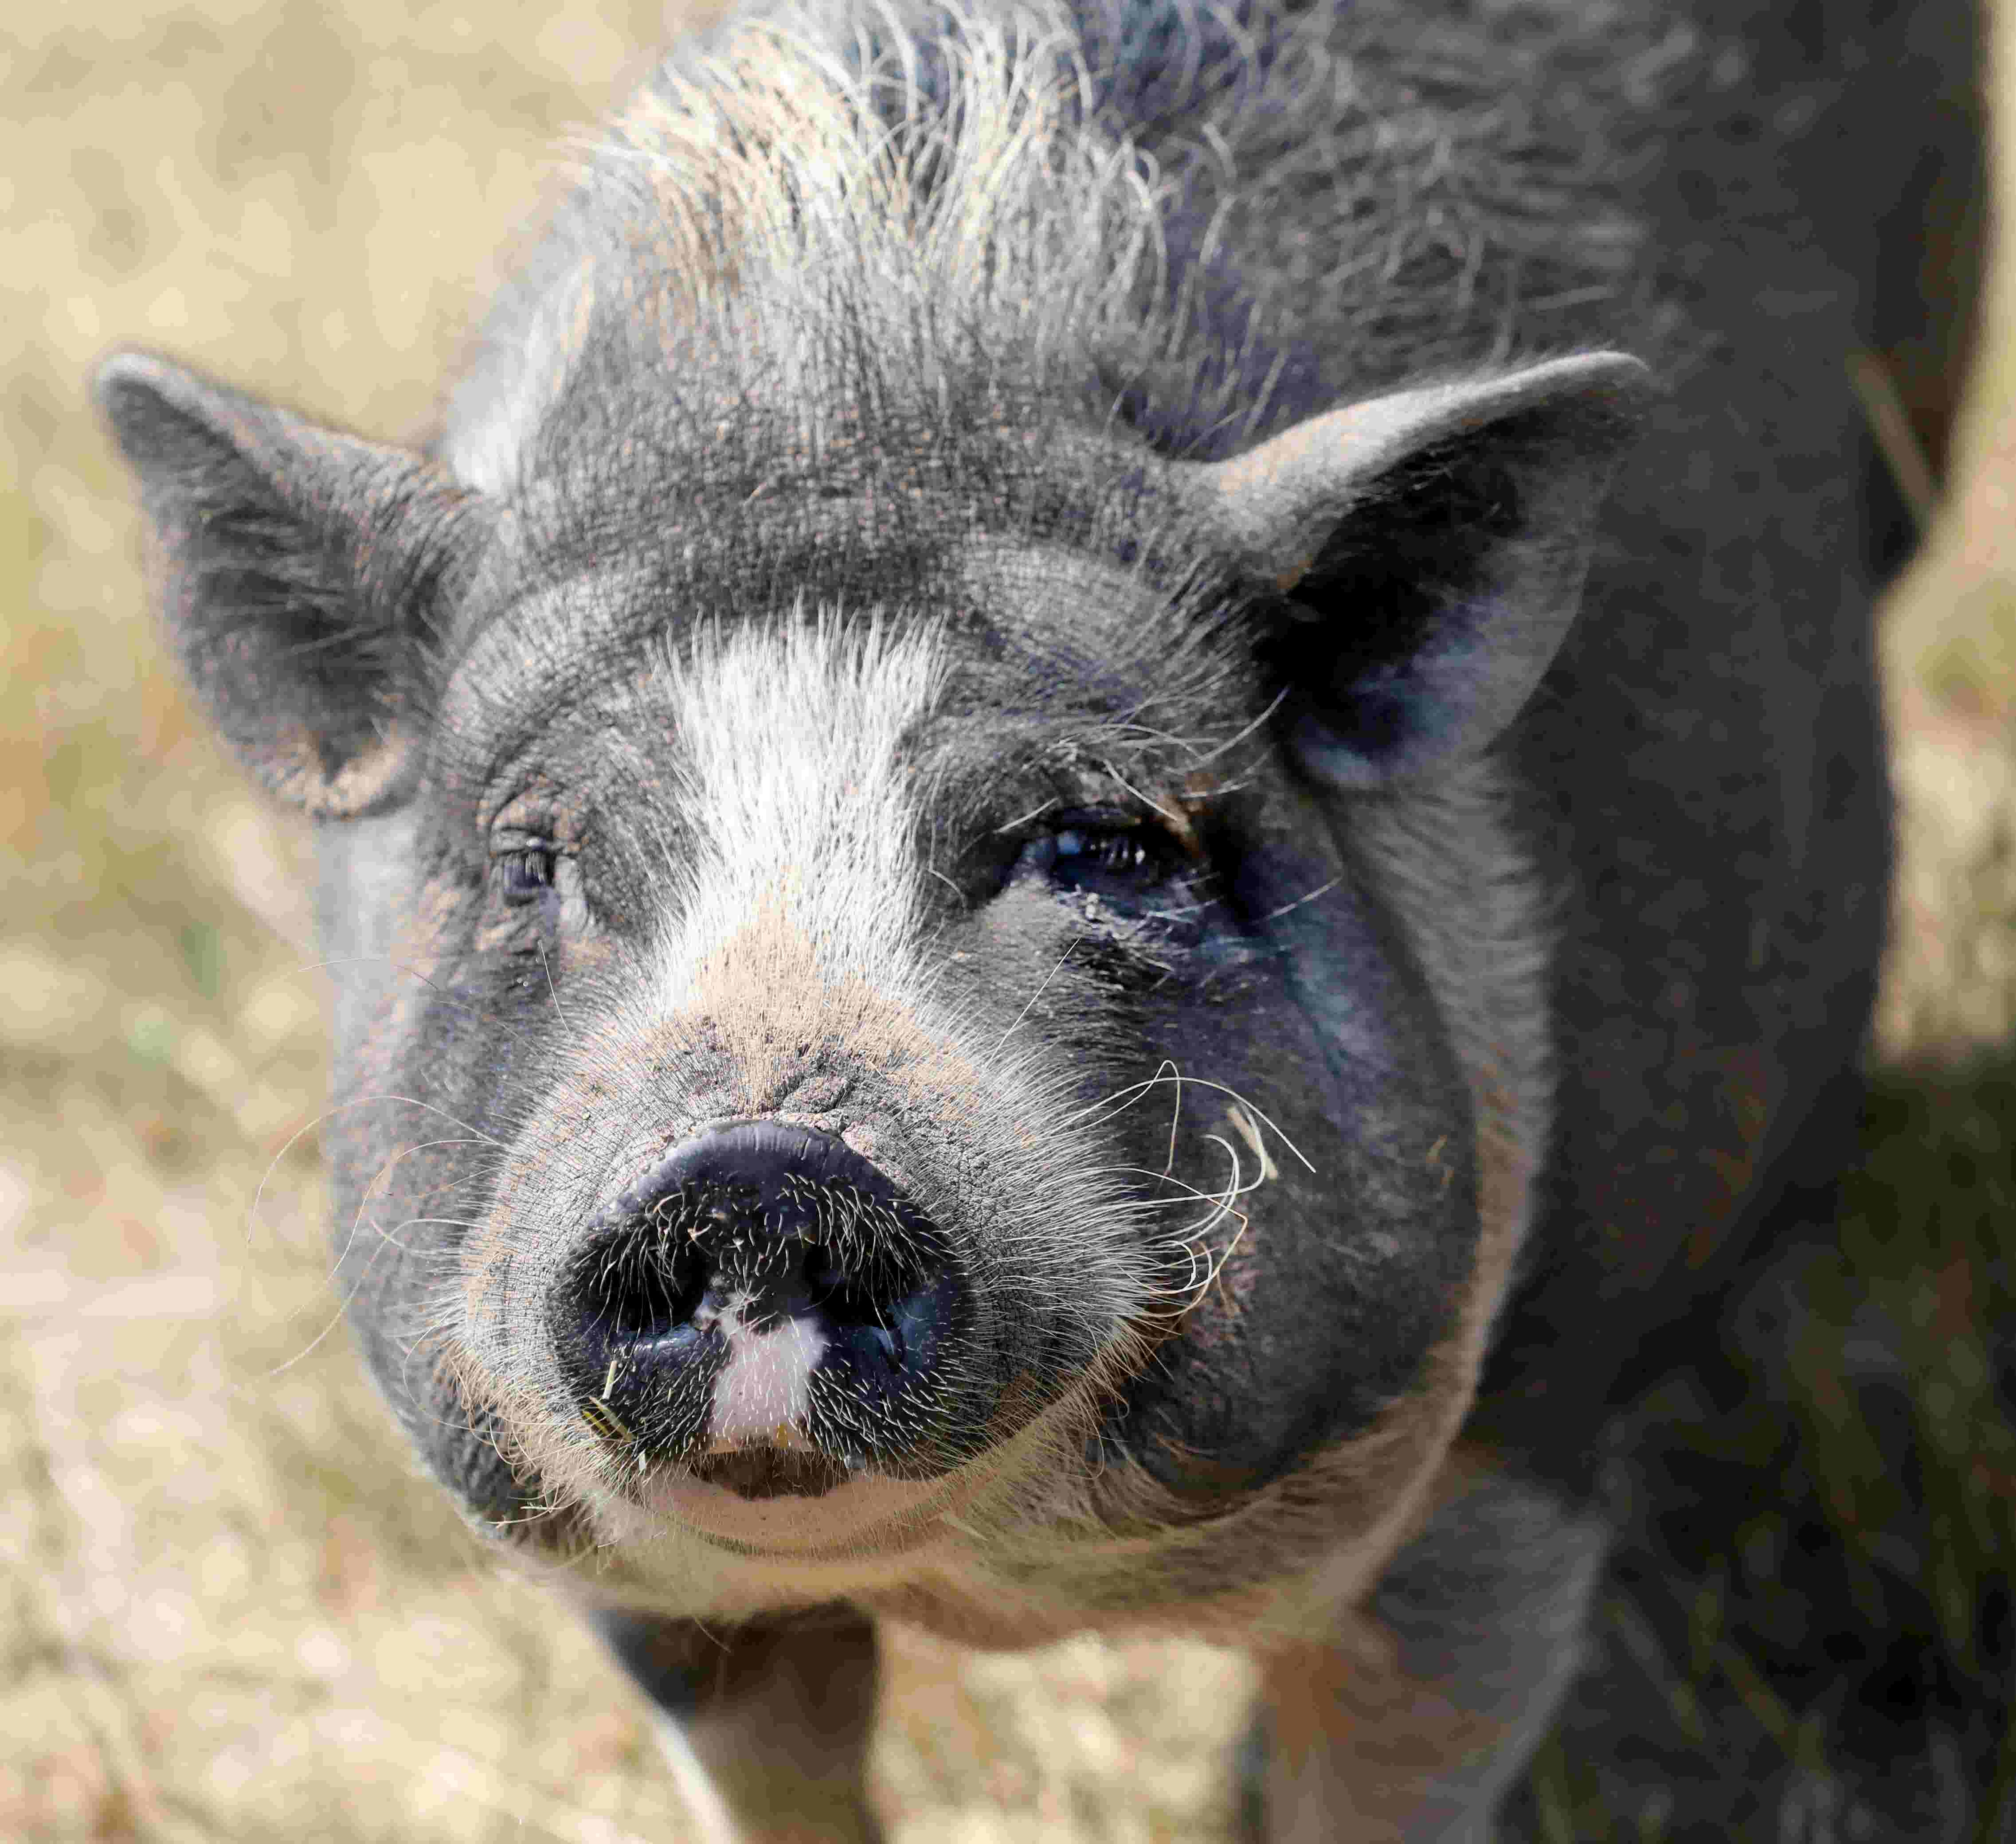 Potbellied Pigs Make Poor Picks As House Pets